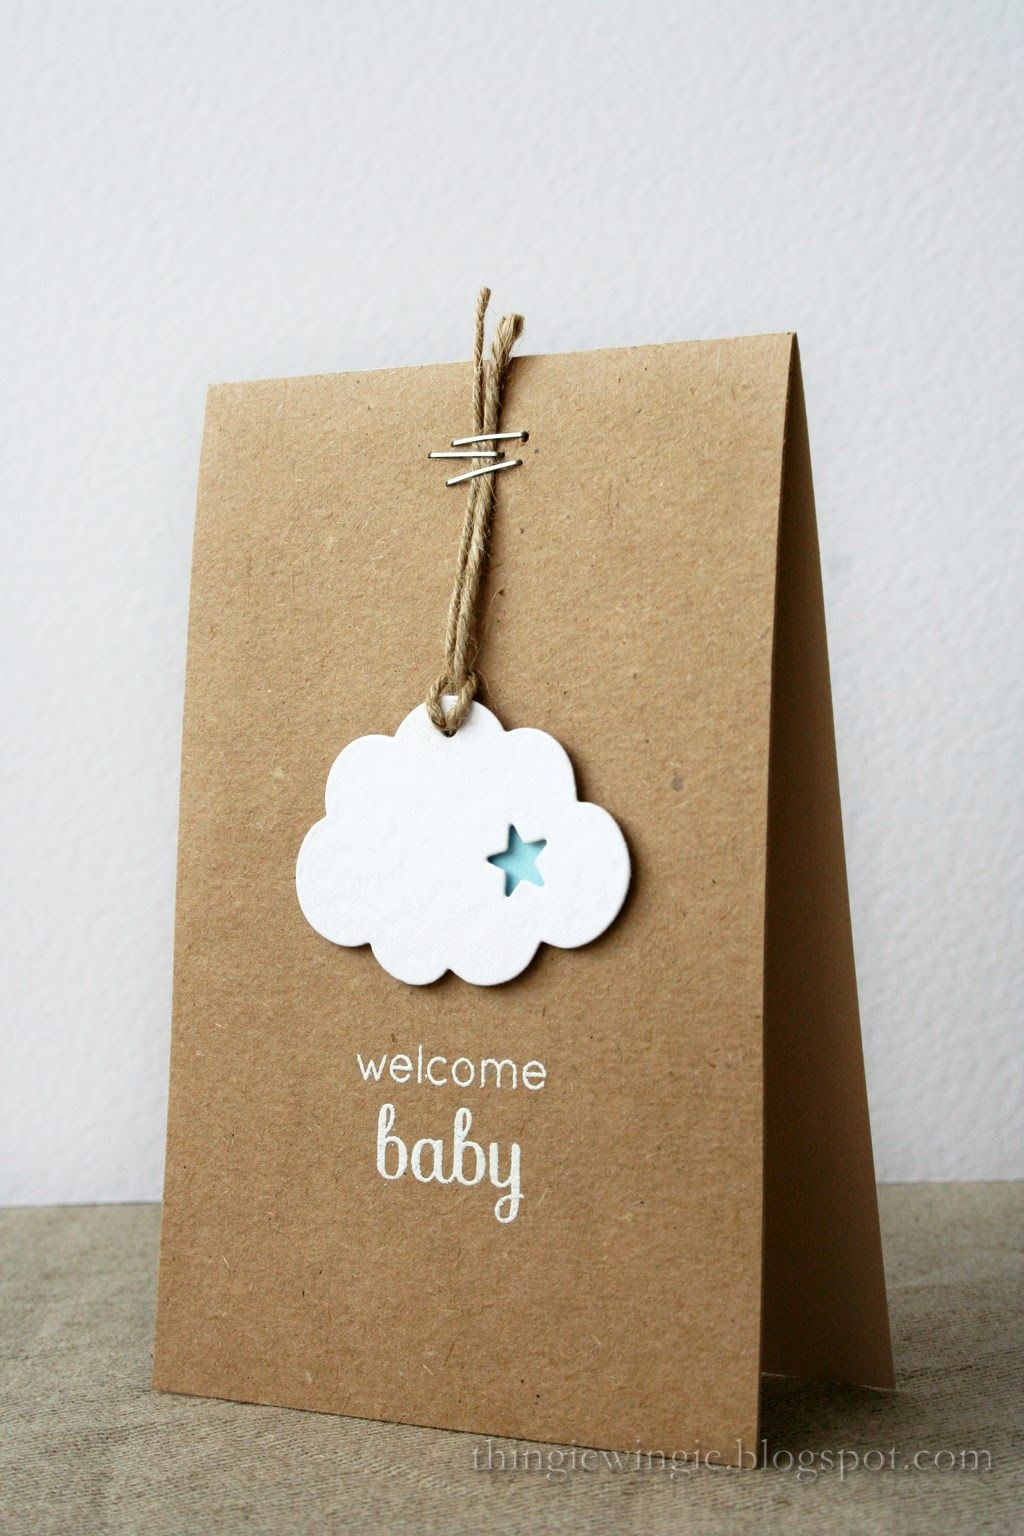 Baby Gift Wrapping Ideas Pinterest : Little things  gift wraps